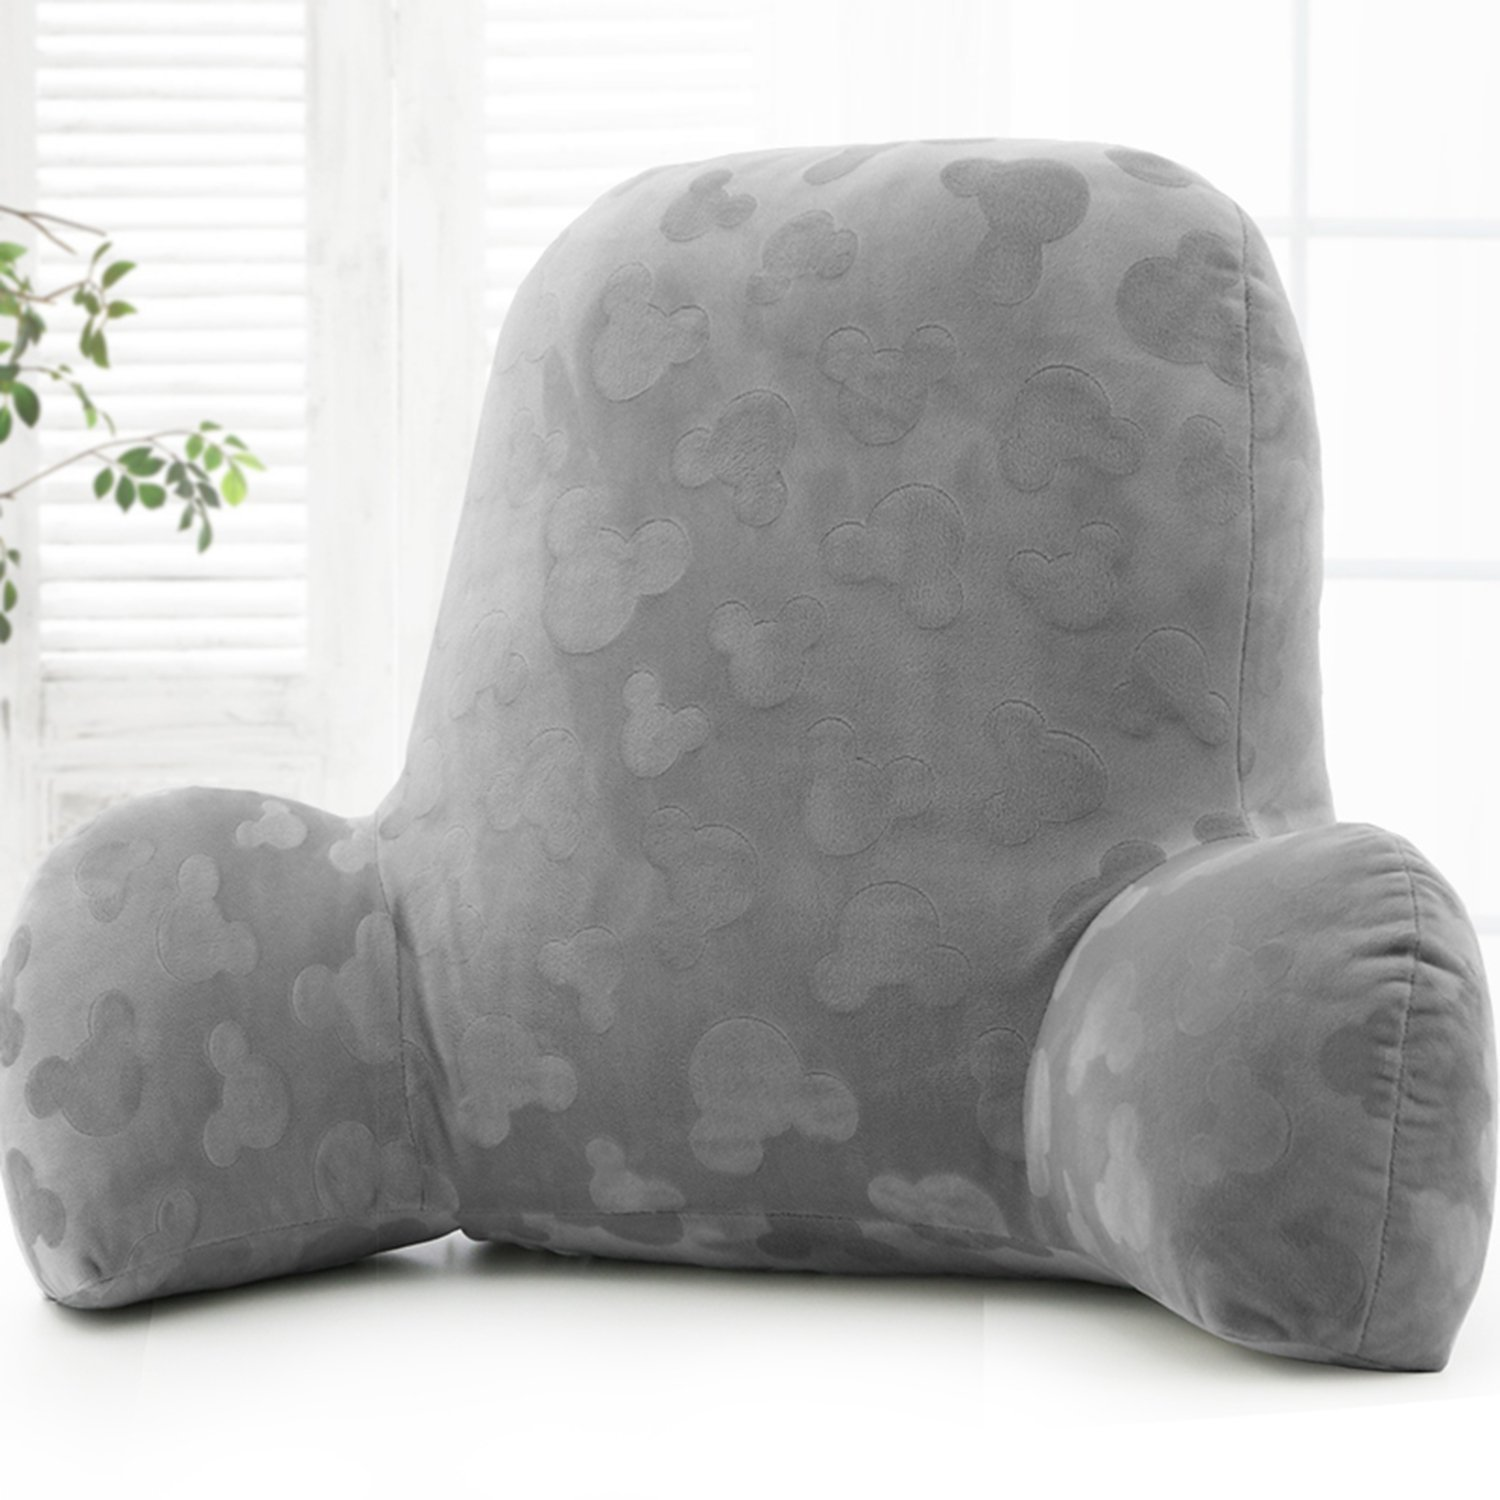 Qianhe Embossed plush Reading Pillow - Best Bed Pillow with Arm Reading Bed - Perfect for Teens, and Kids -by (Gray)